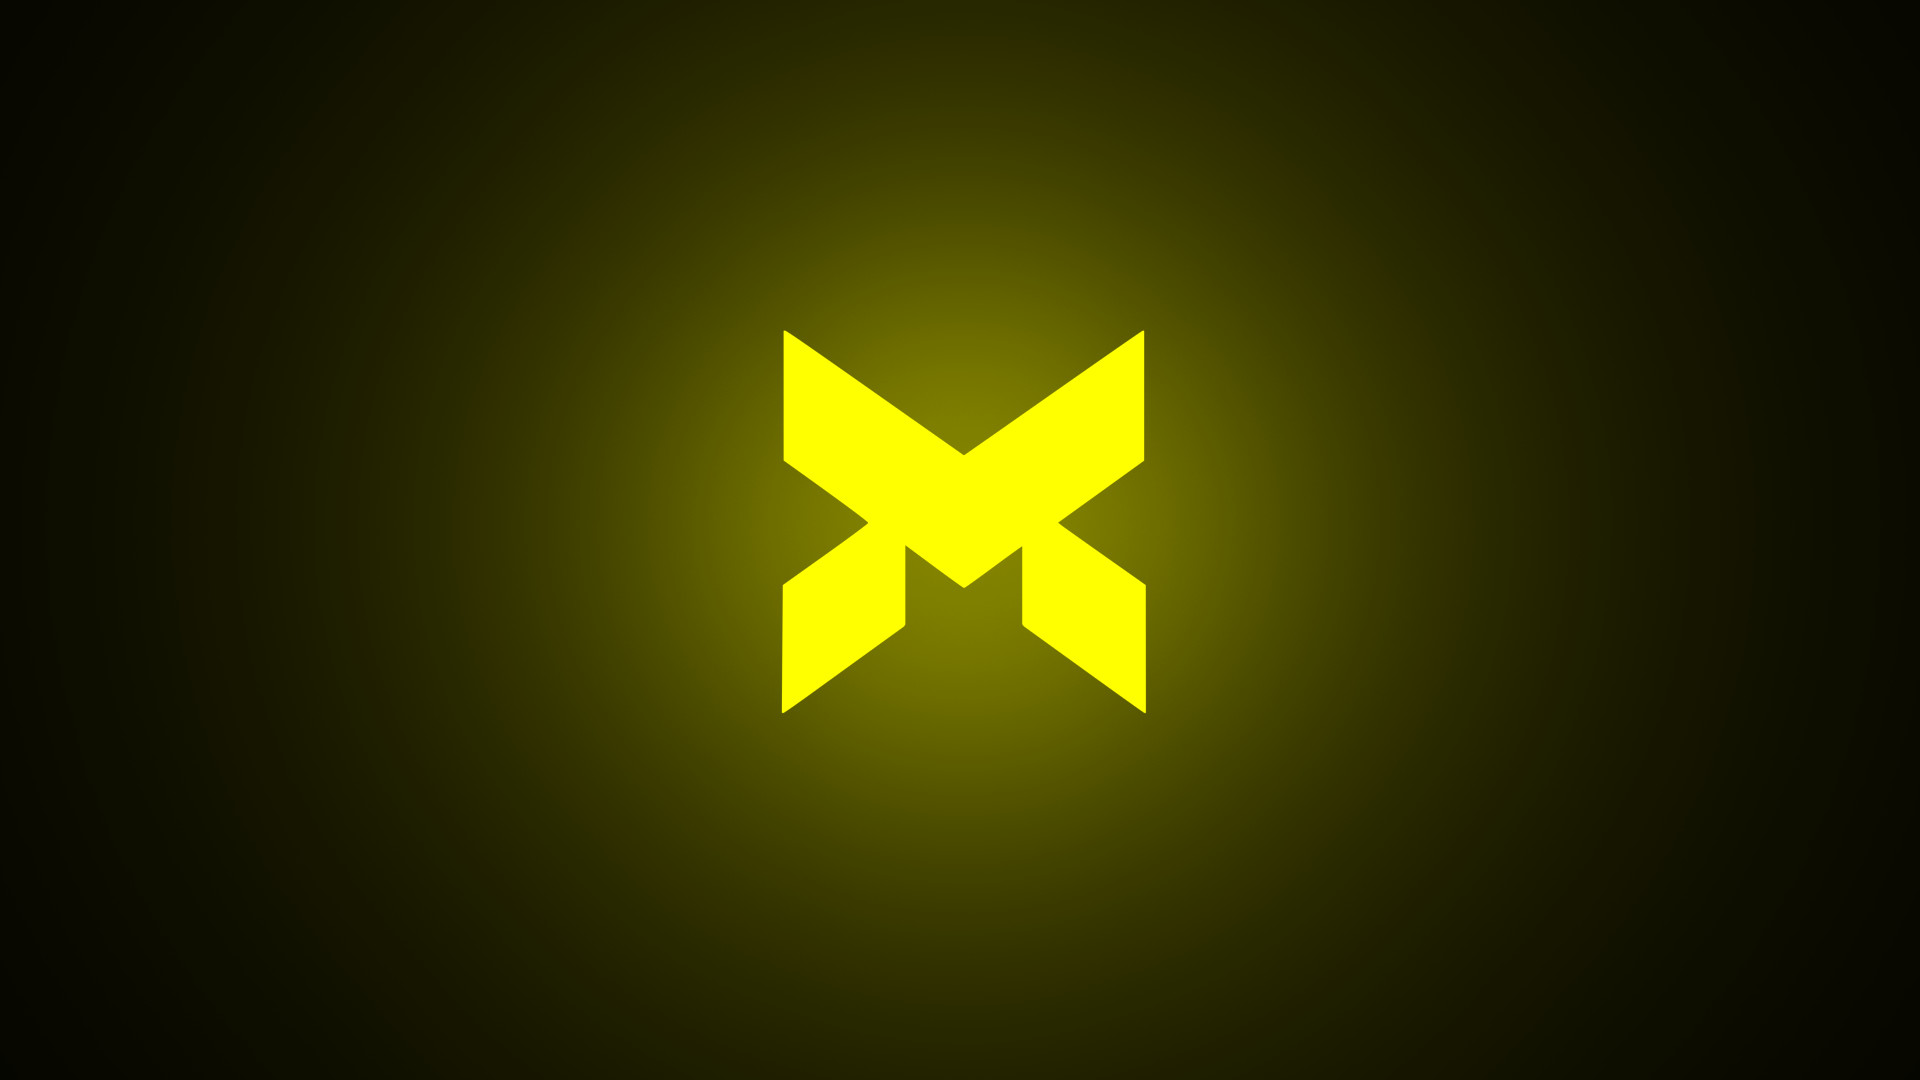 [1920×1080] A simple clean Corsair Wallpaper.   Reddit HD Wallpapers    Pinterest   Wallpaper and Cleaning